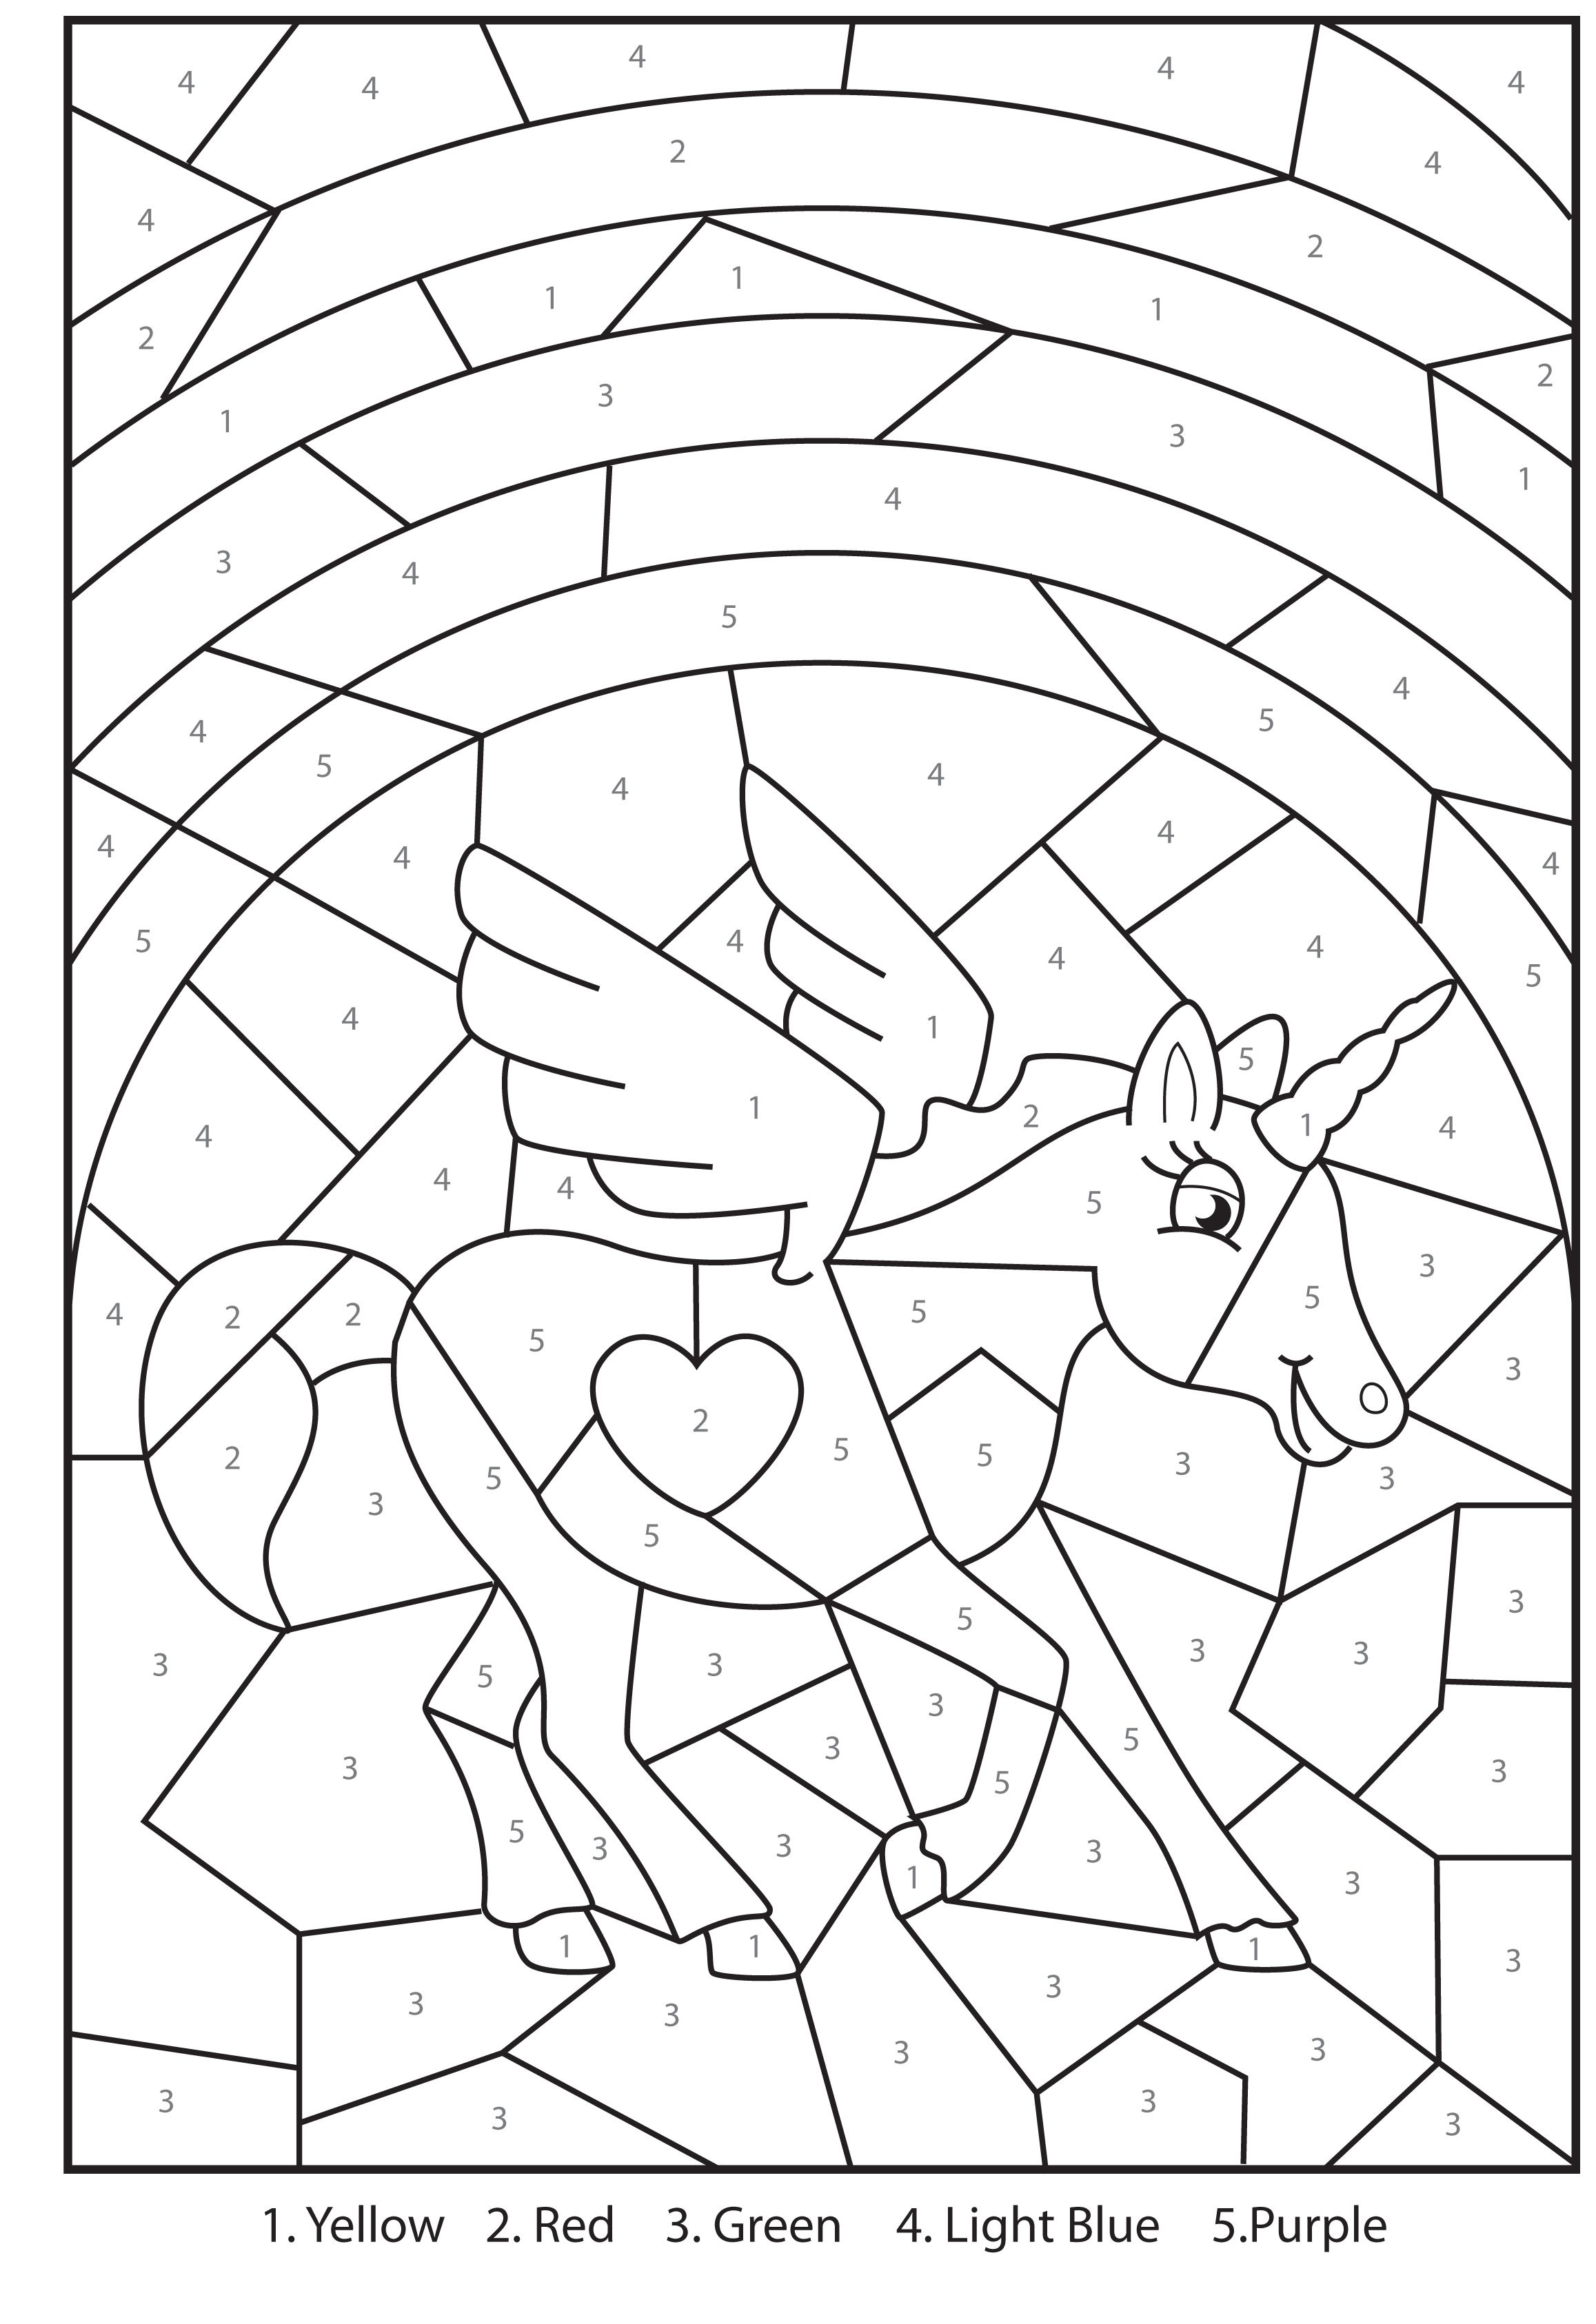 Free Printable Colournumbers Activity For Kids | For The Girls - Free Printable Christmas Color By Number Coloring Pages